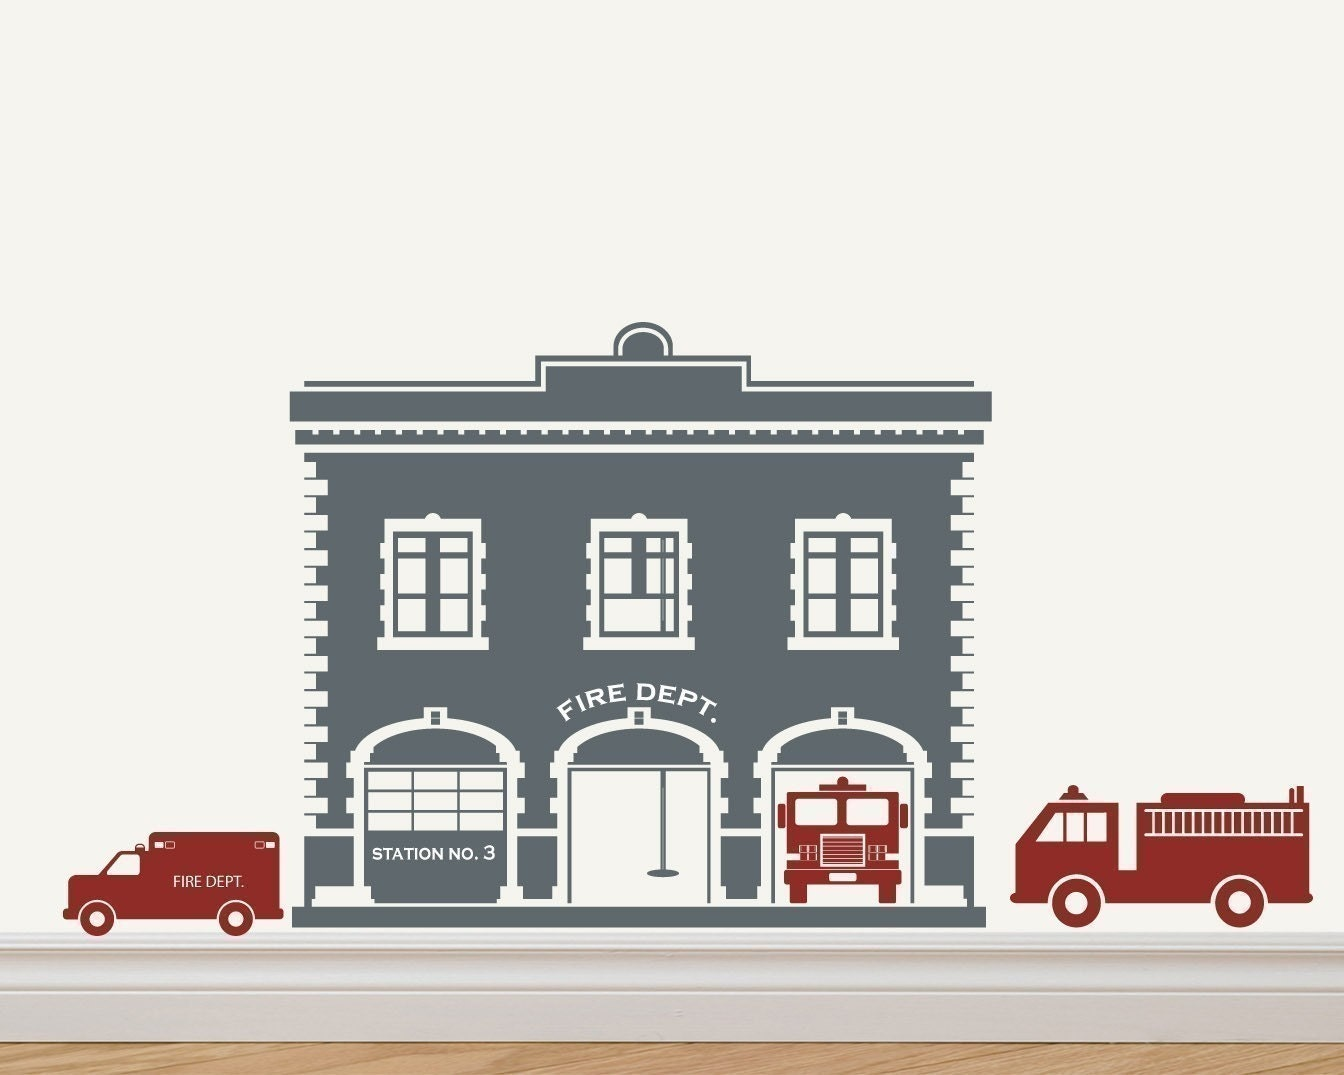 Clip Art House Fire Fire station / fire house fire